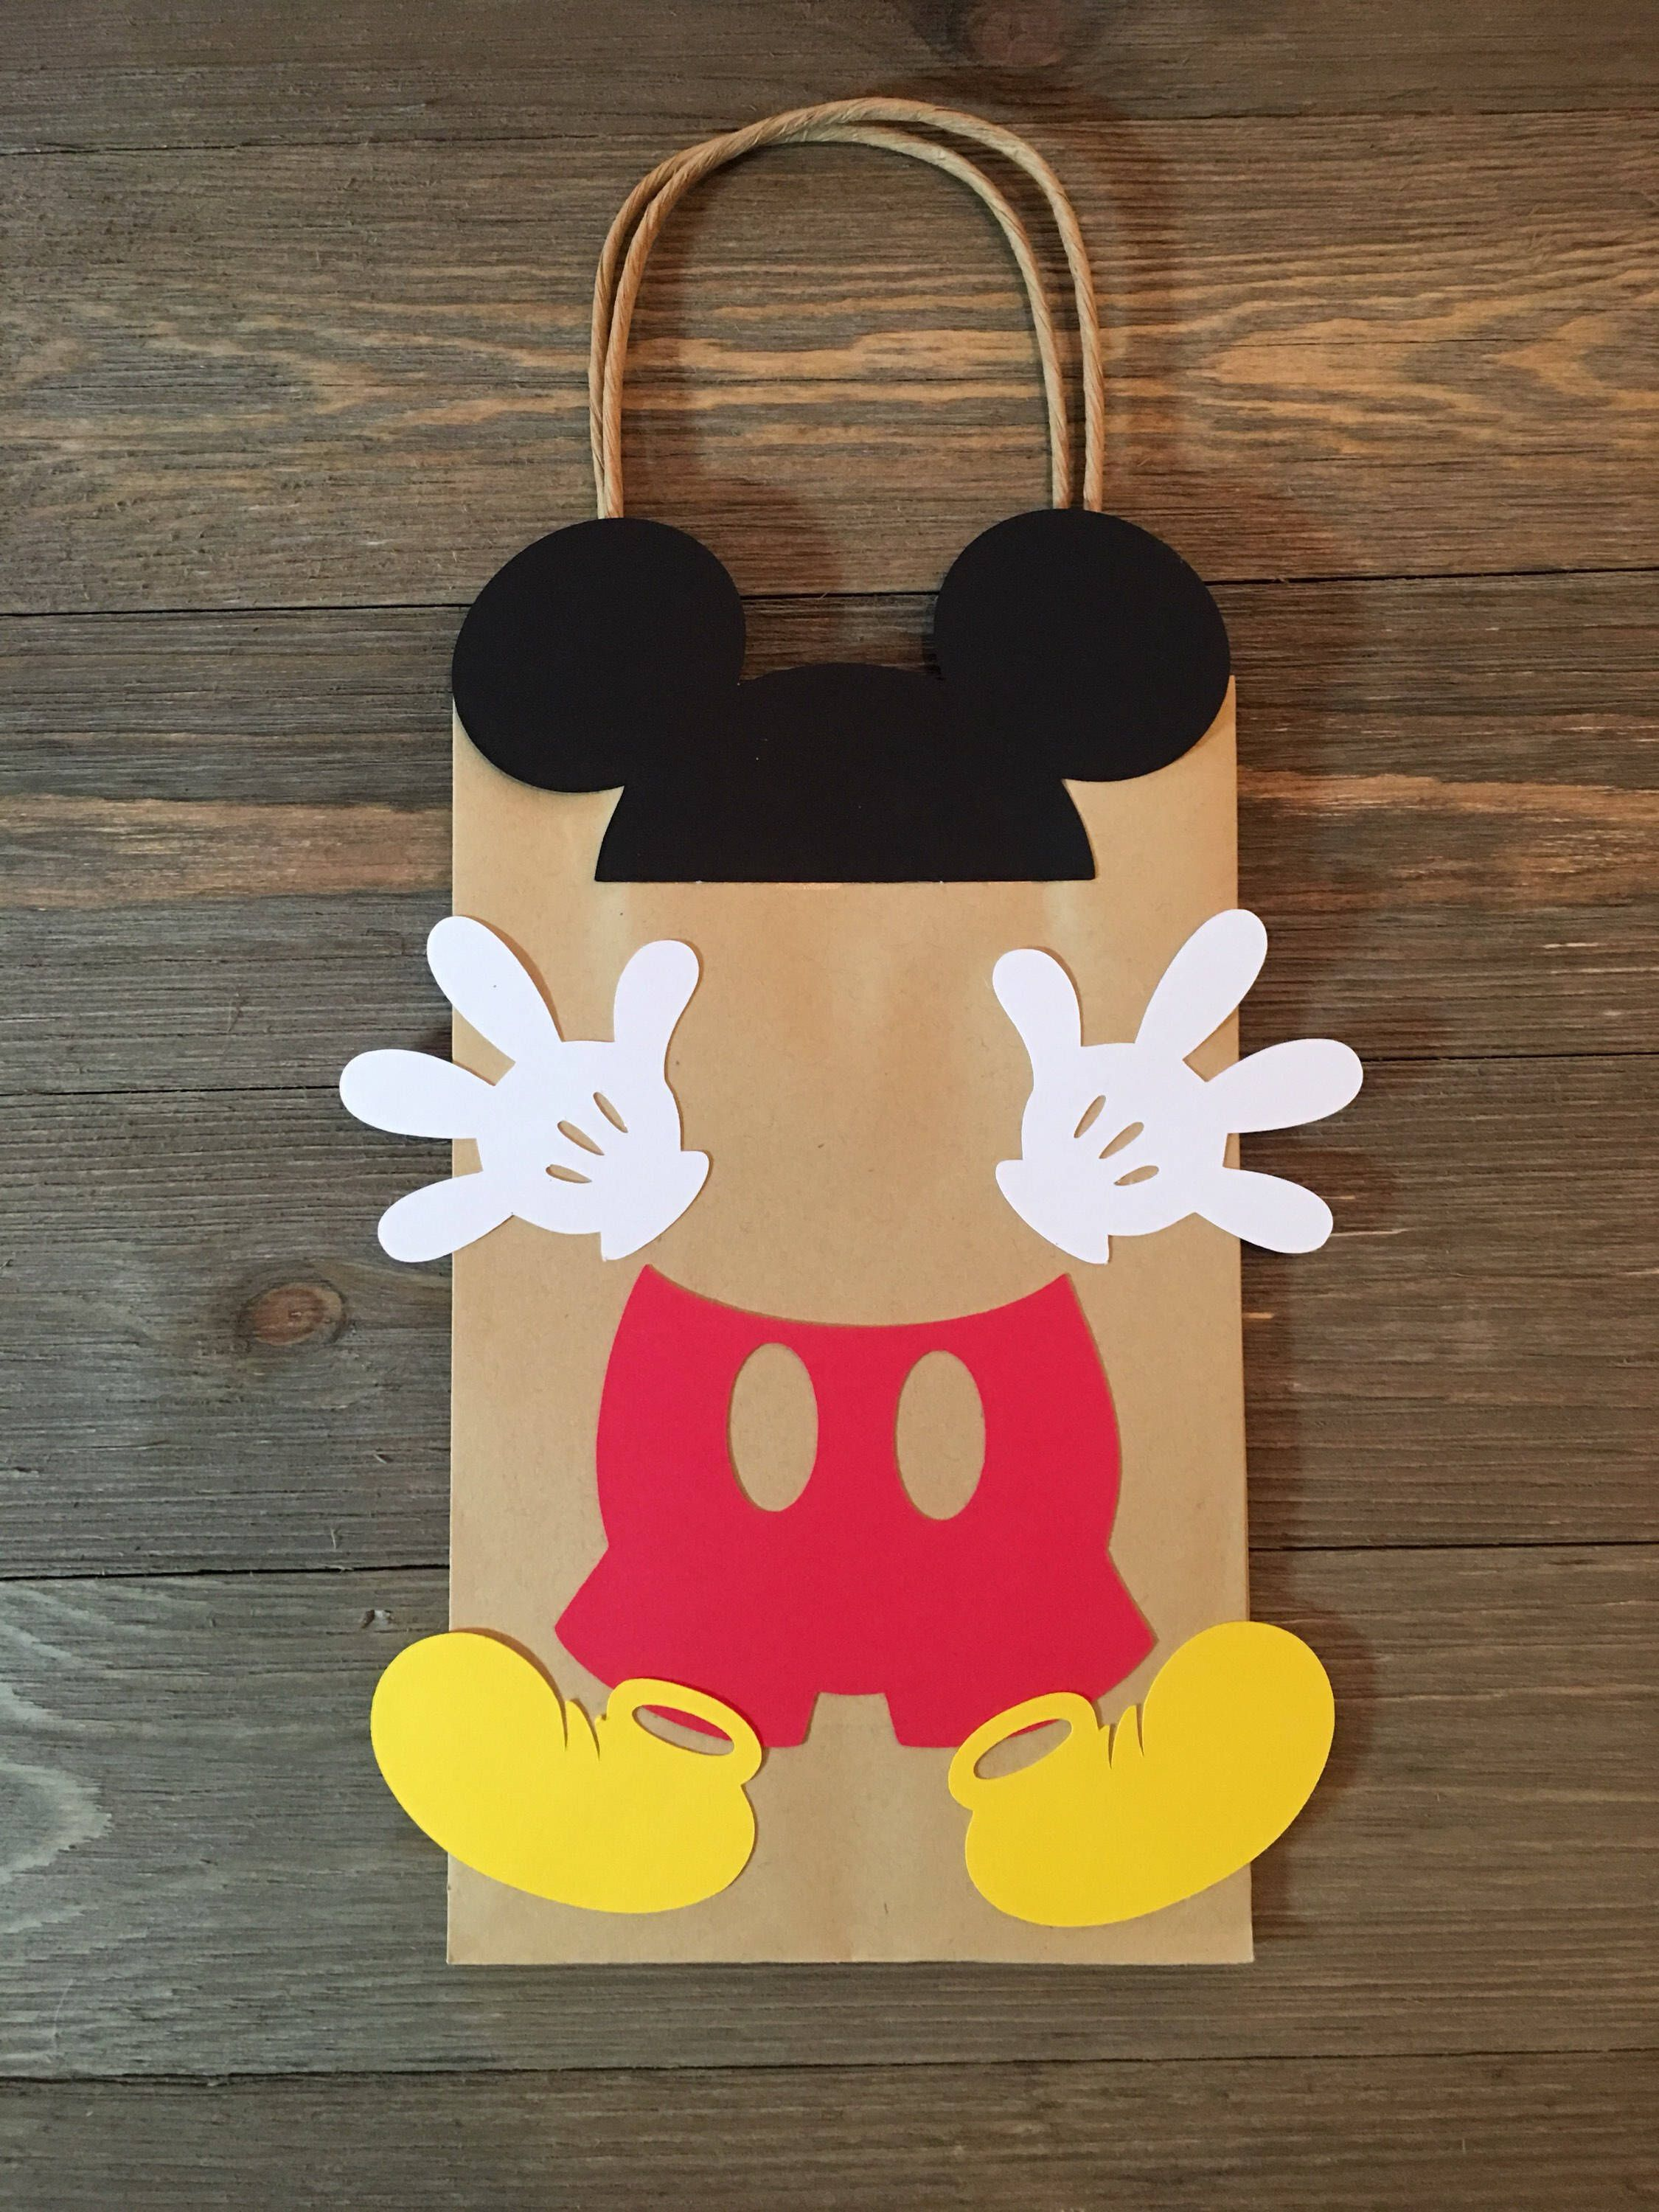 Mickey Mouse Birthday Bag, Mickey Mouse Birthday Party Favor Treat Bags, Mickey Mouse Birthday Party Gift Bags, Mickey Mouse Party Bags #mickeymousebirthdaypartyideas1st